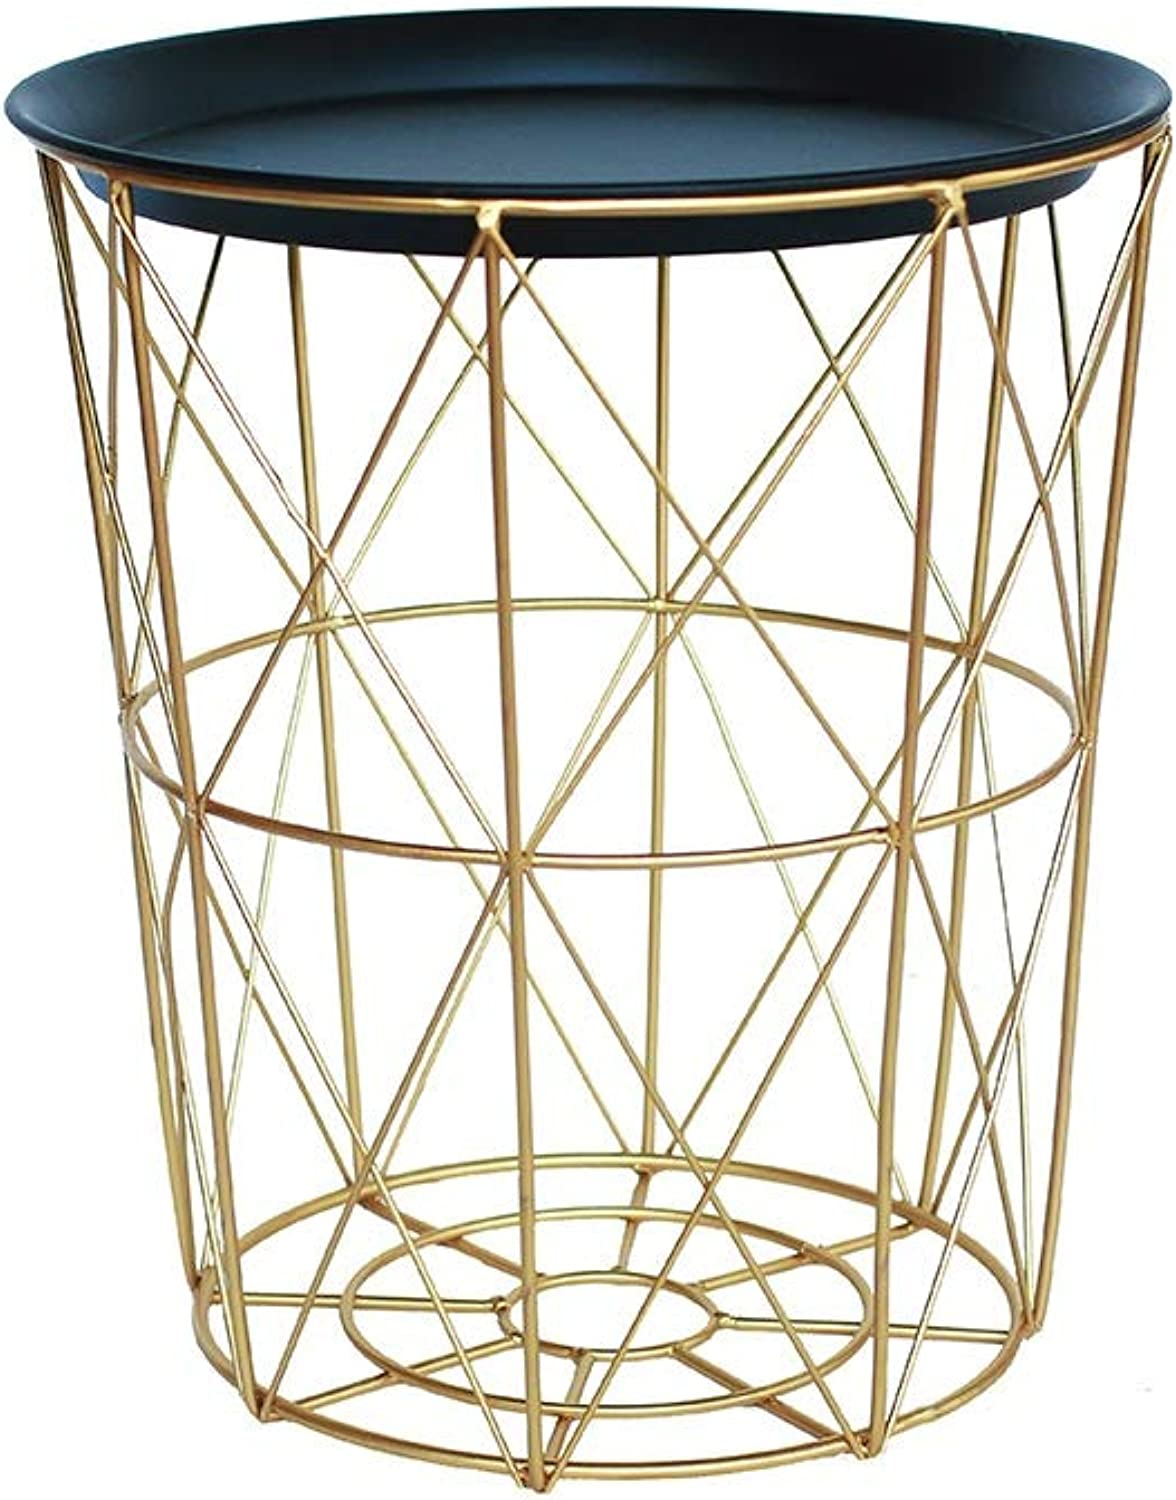 Laundry Hamper Multifunctional with Lid Hollow Household Storage Basket Wrought Iron gold ZHANGQIANG (Size   23  29.5  33.5cm)